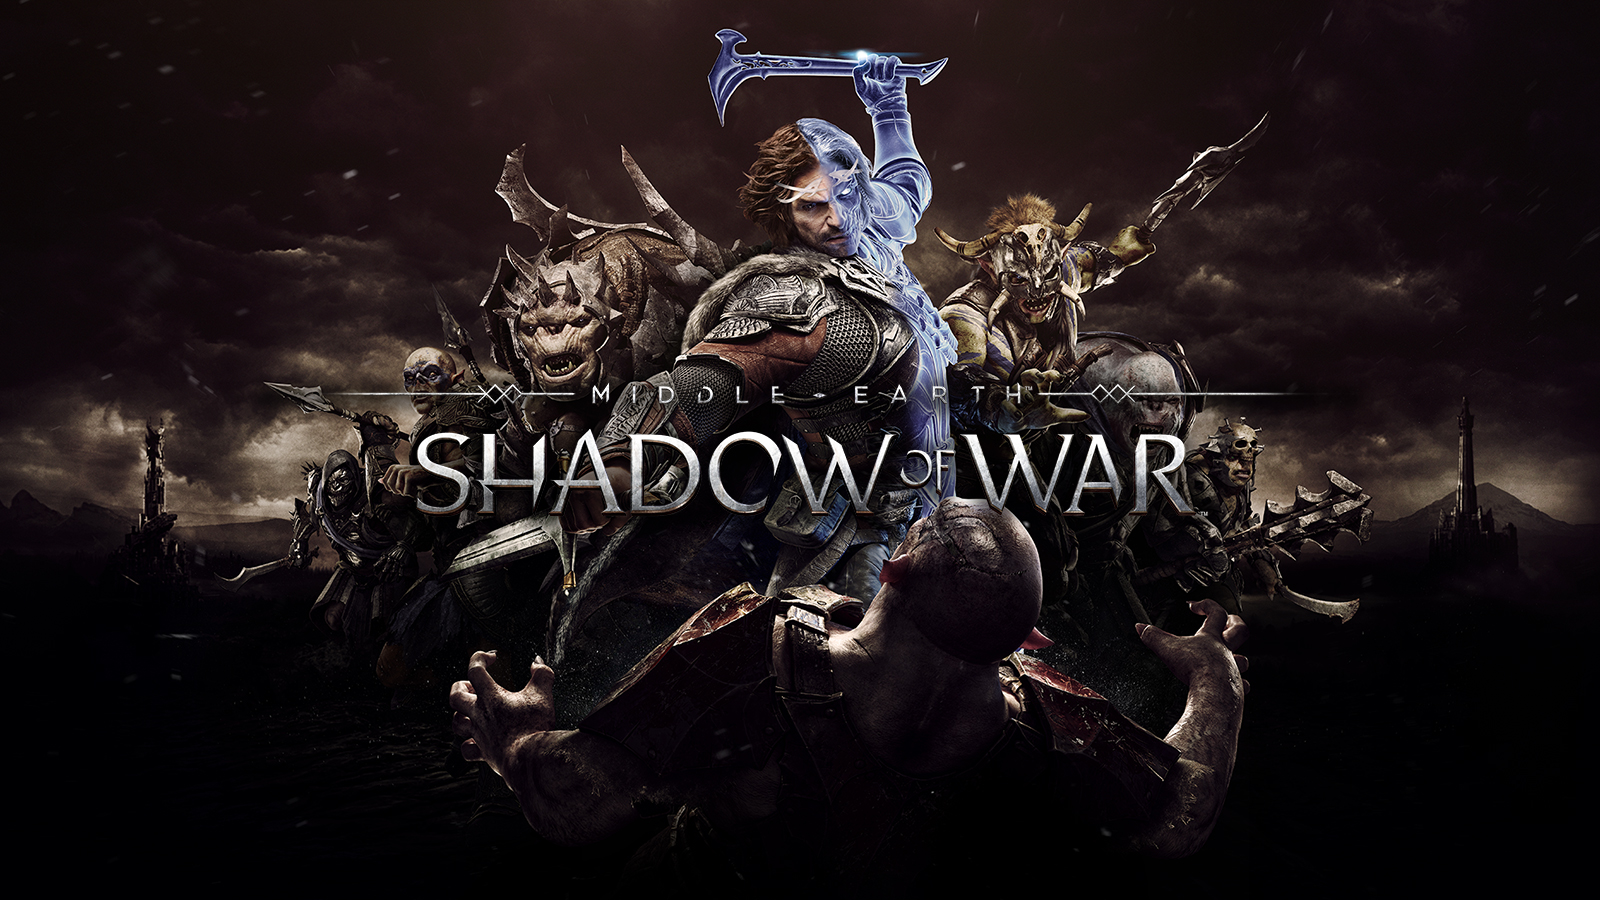 Take control of Orc's in Middle-earth: Shadow of War.